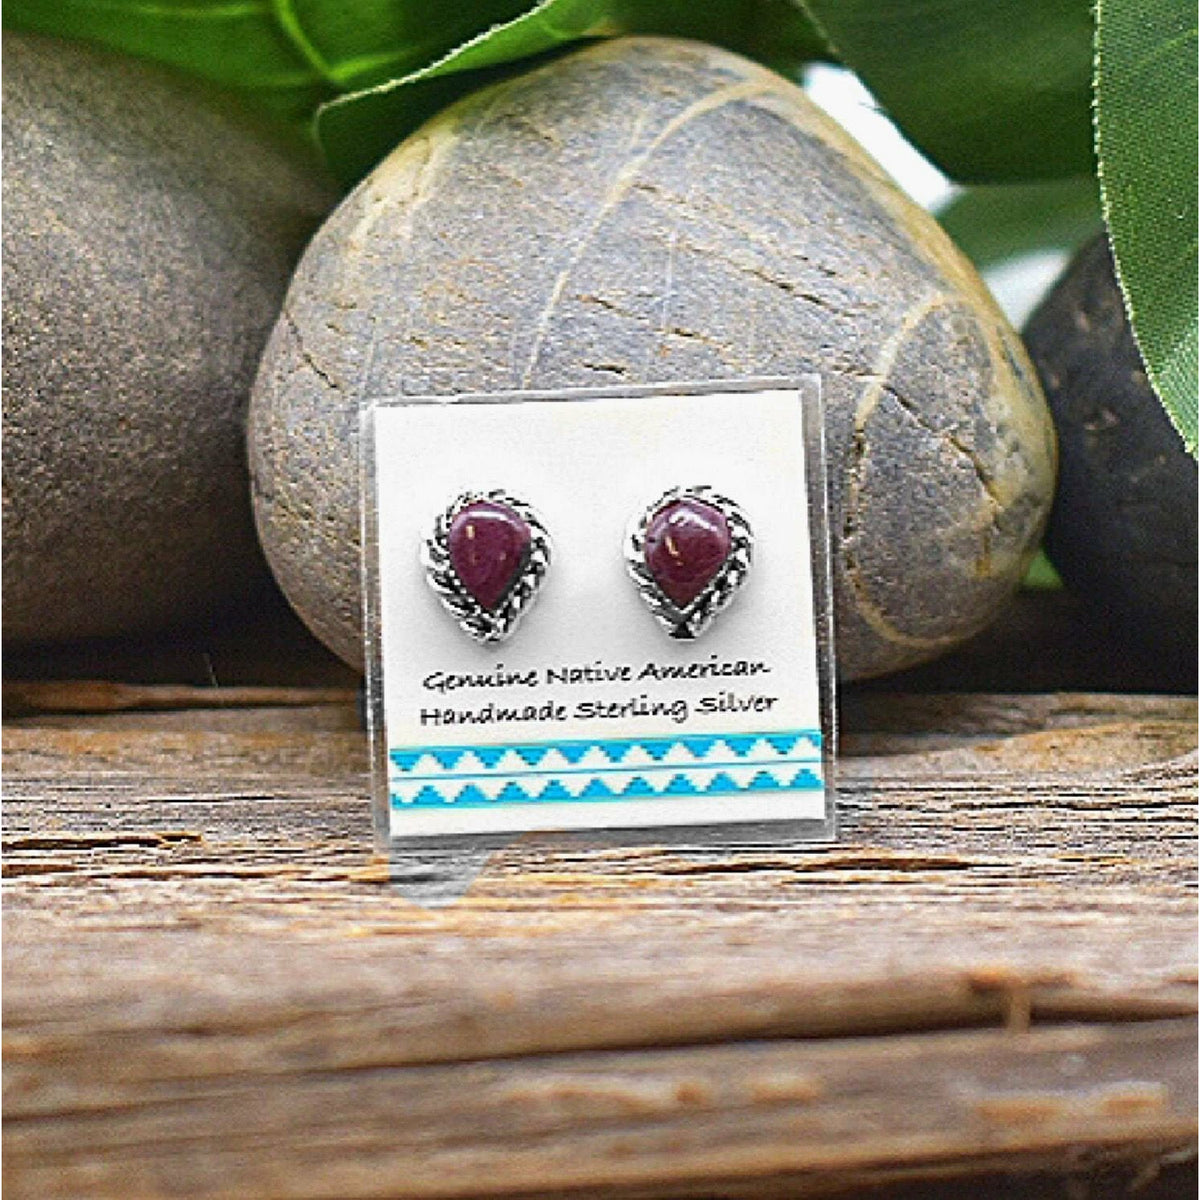 Purple Spiny Oyster Shell Earrings in 925 Sterling Silver, Native American USA Handmade, Nickle Free, Natural Shell, Teardrop